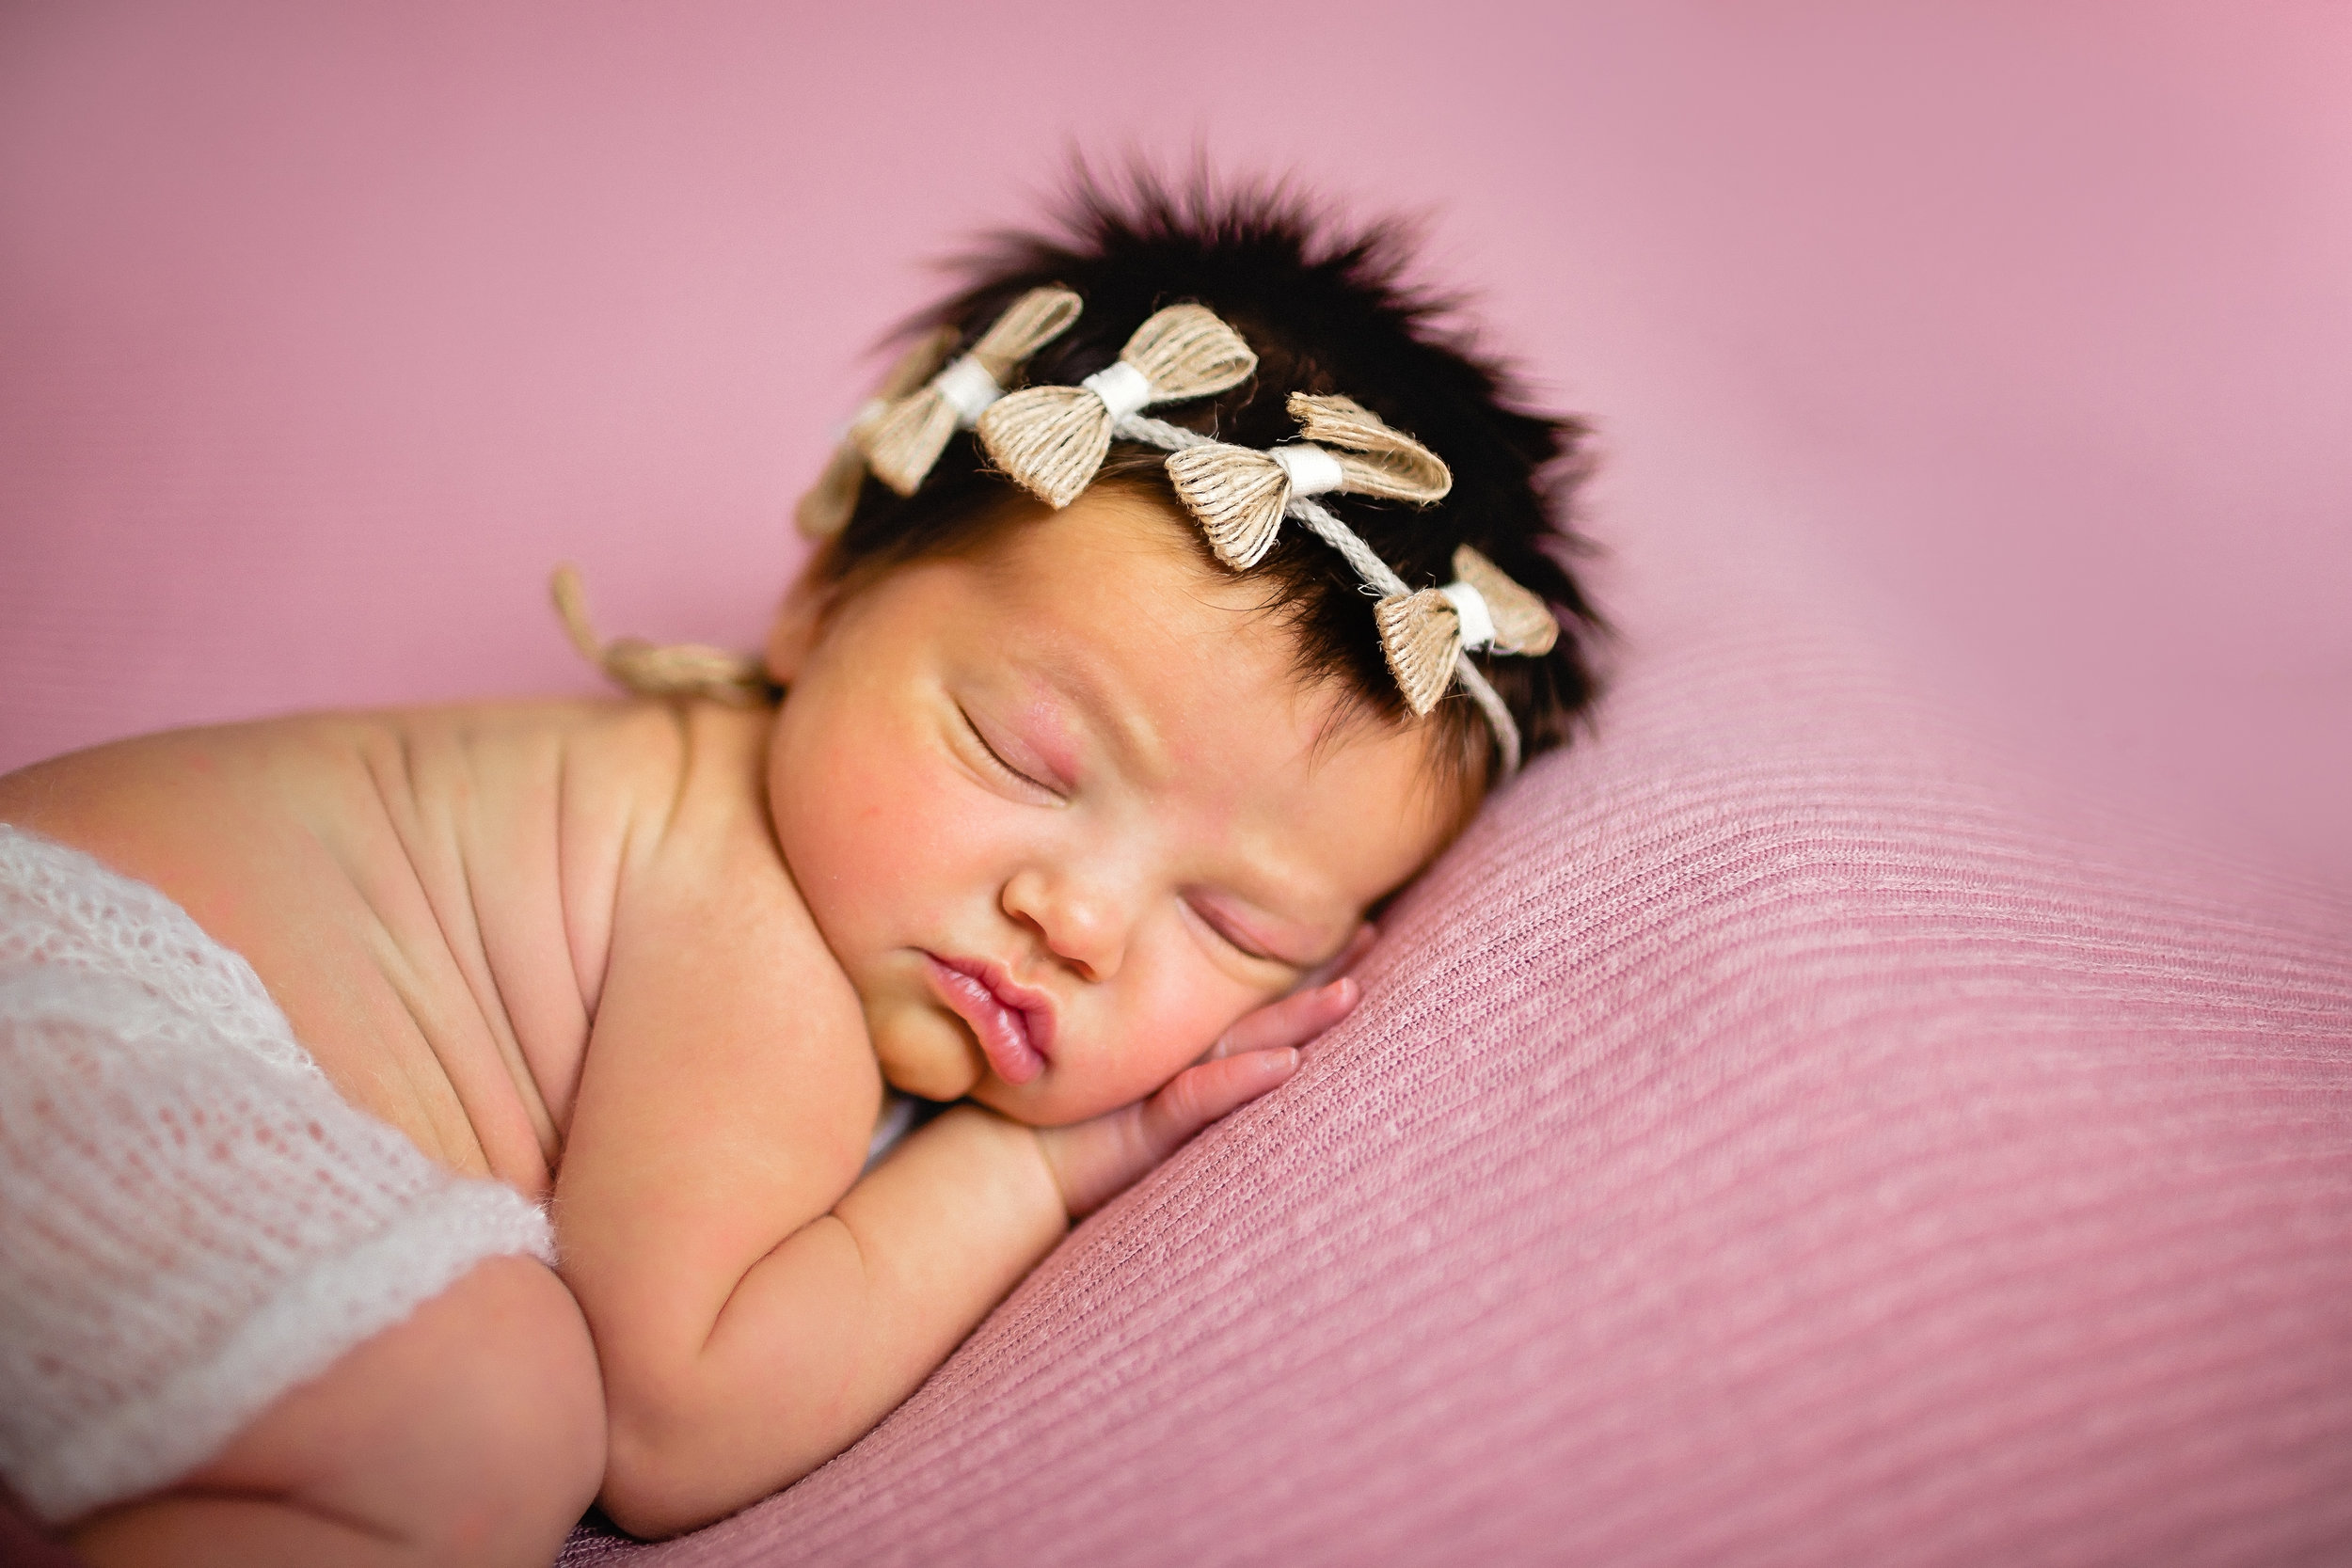 newborn photographer baby on pink blanket with lots of hair